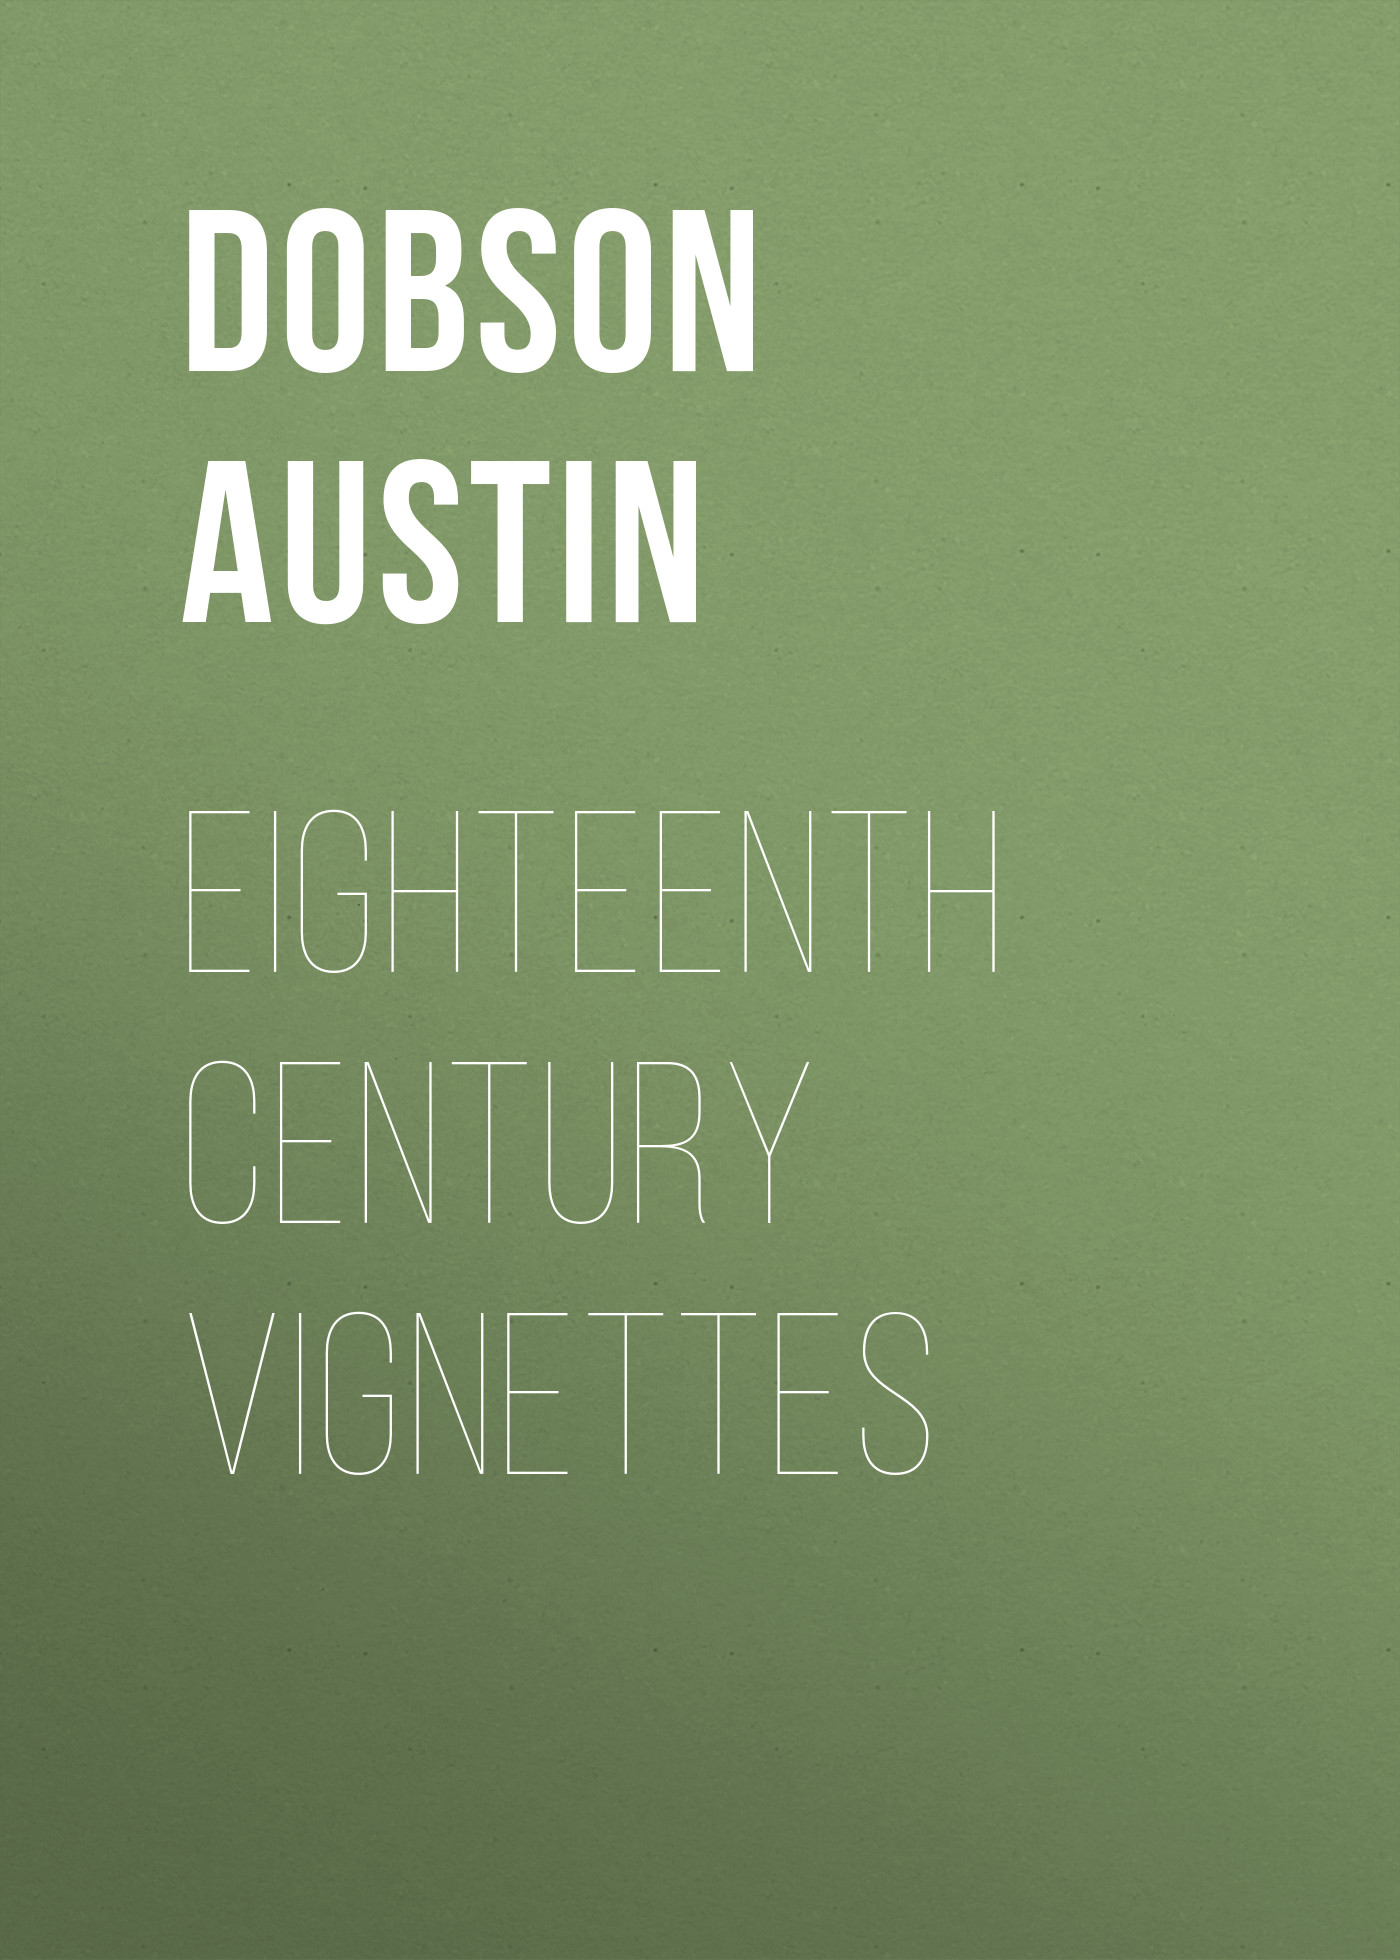 цены Dobson Austin Eighteenth Century Vignettes